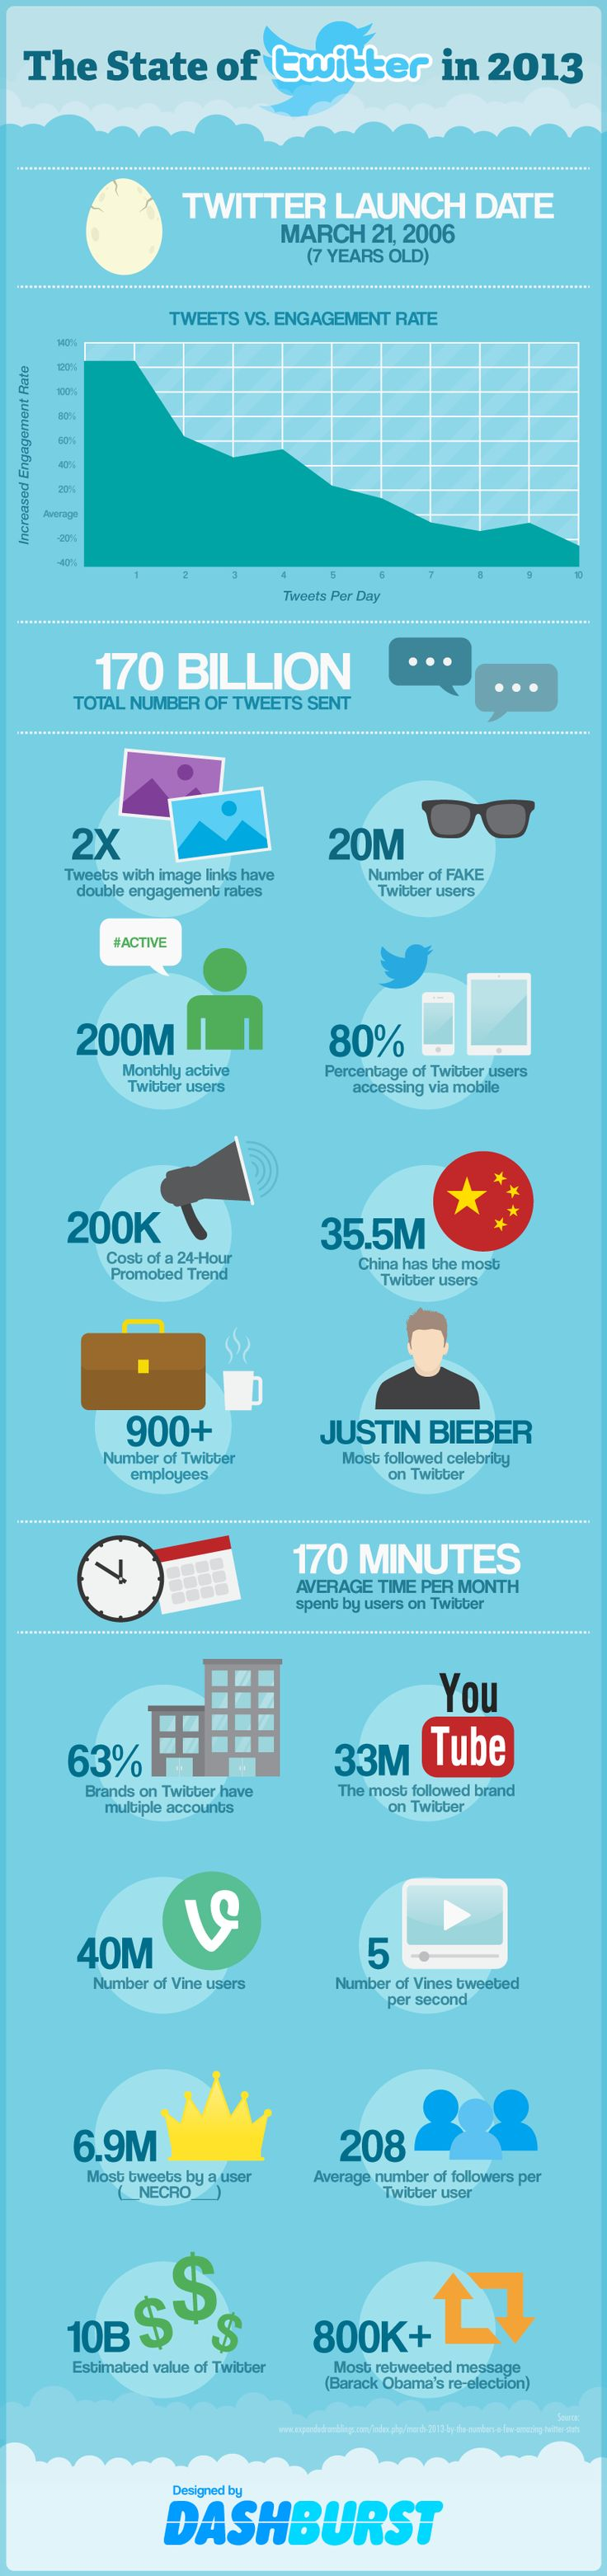 The state of Twitter in 2013 #infographic